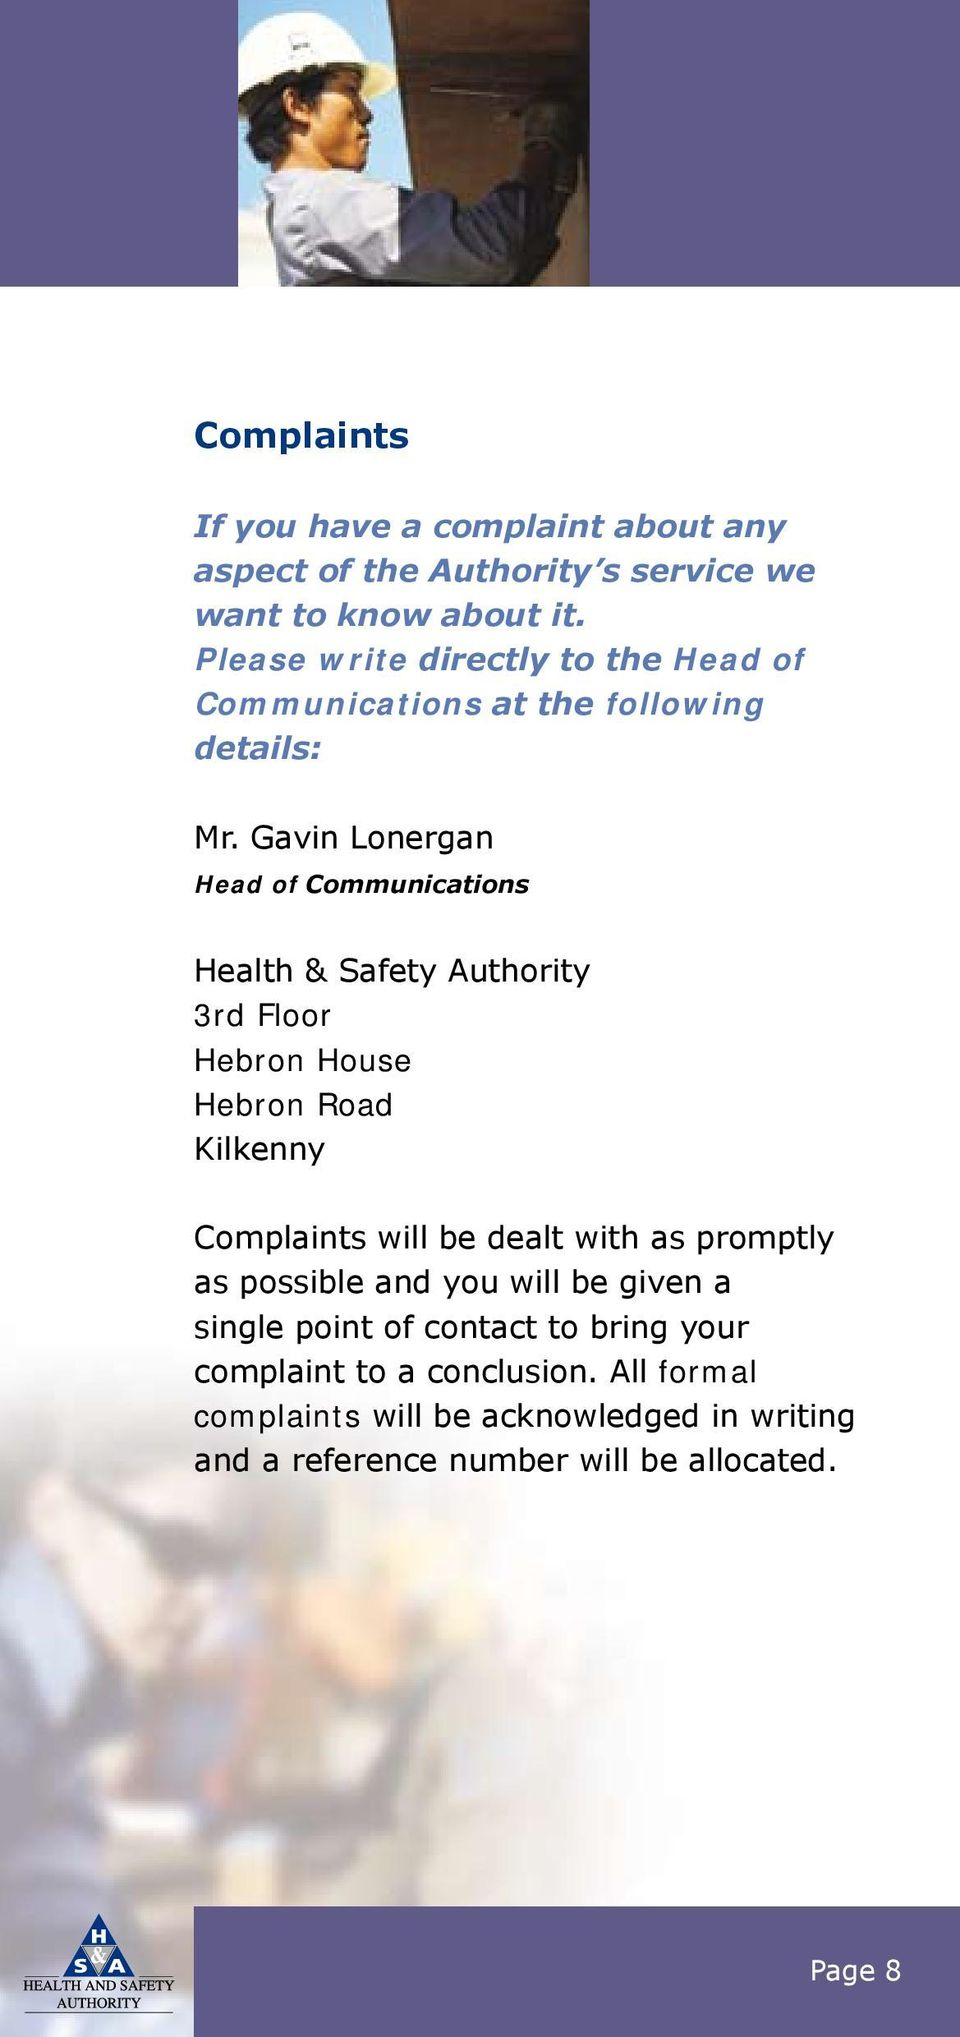 Gavin Lonergan Head of Communications Health & Safety Authority 3rd Floor Hebron House Hebron Road Kilkenny Complaints will be dealt